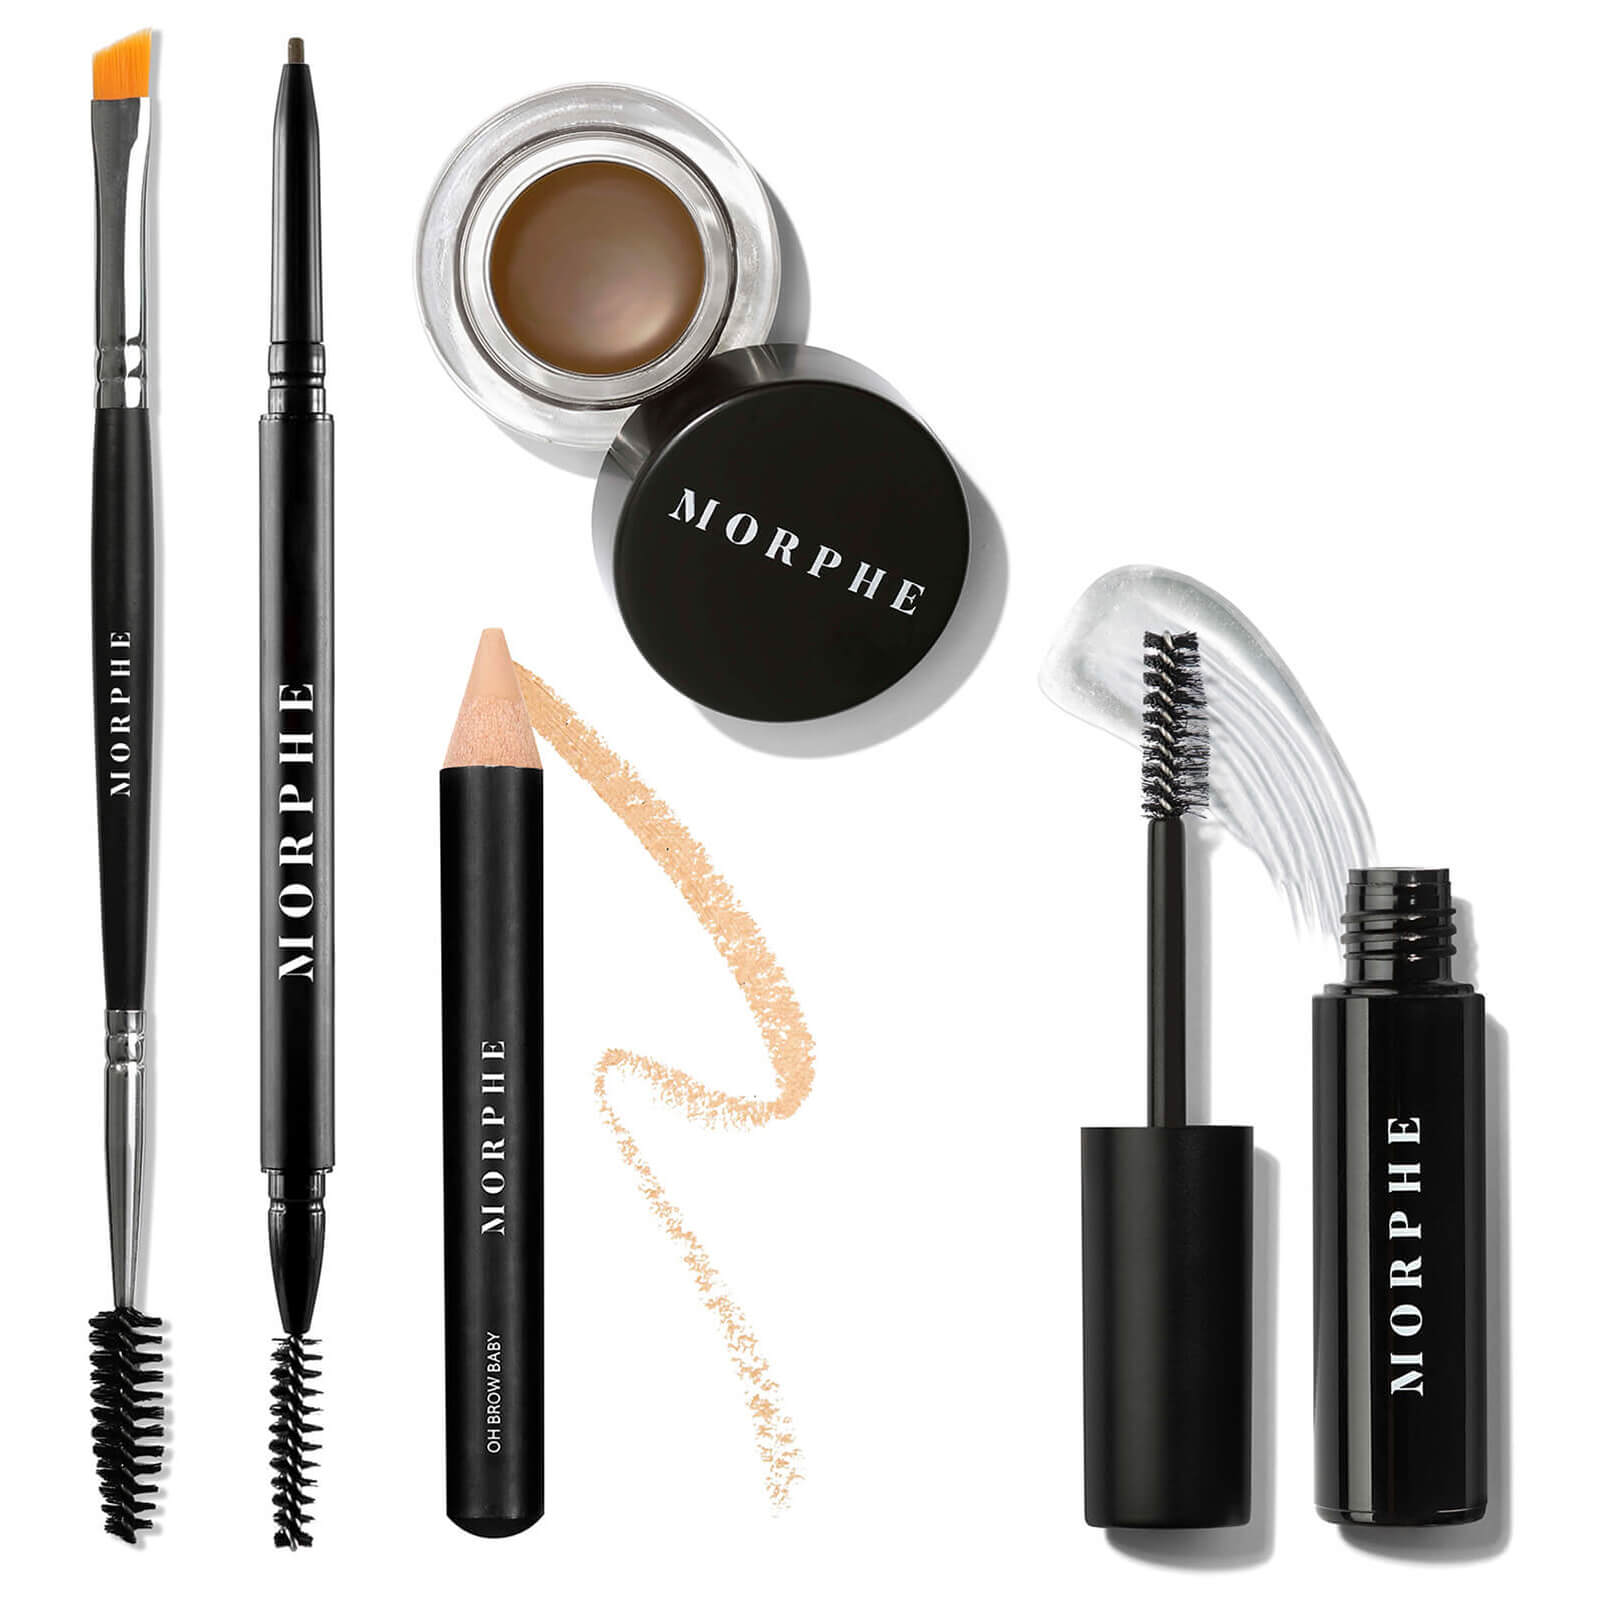 Morphe Arch Obsessions Brow Kit Worth 3250 Various Shades